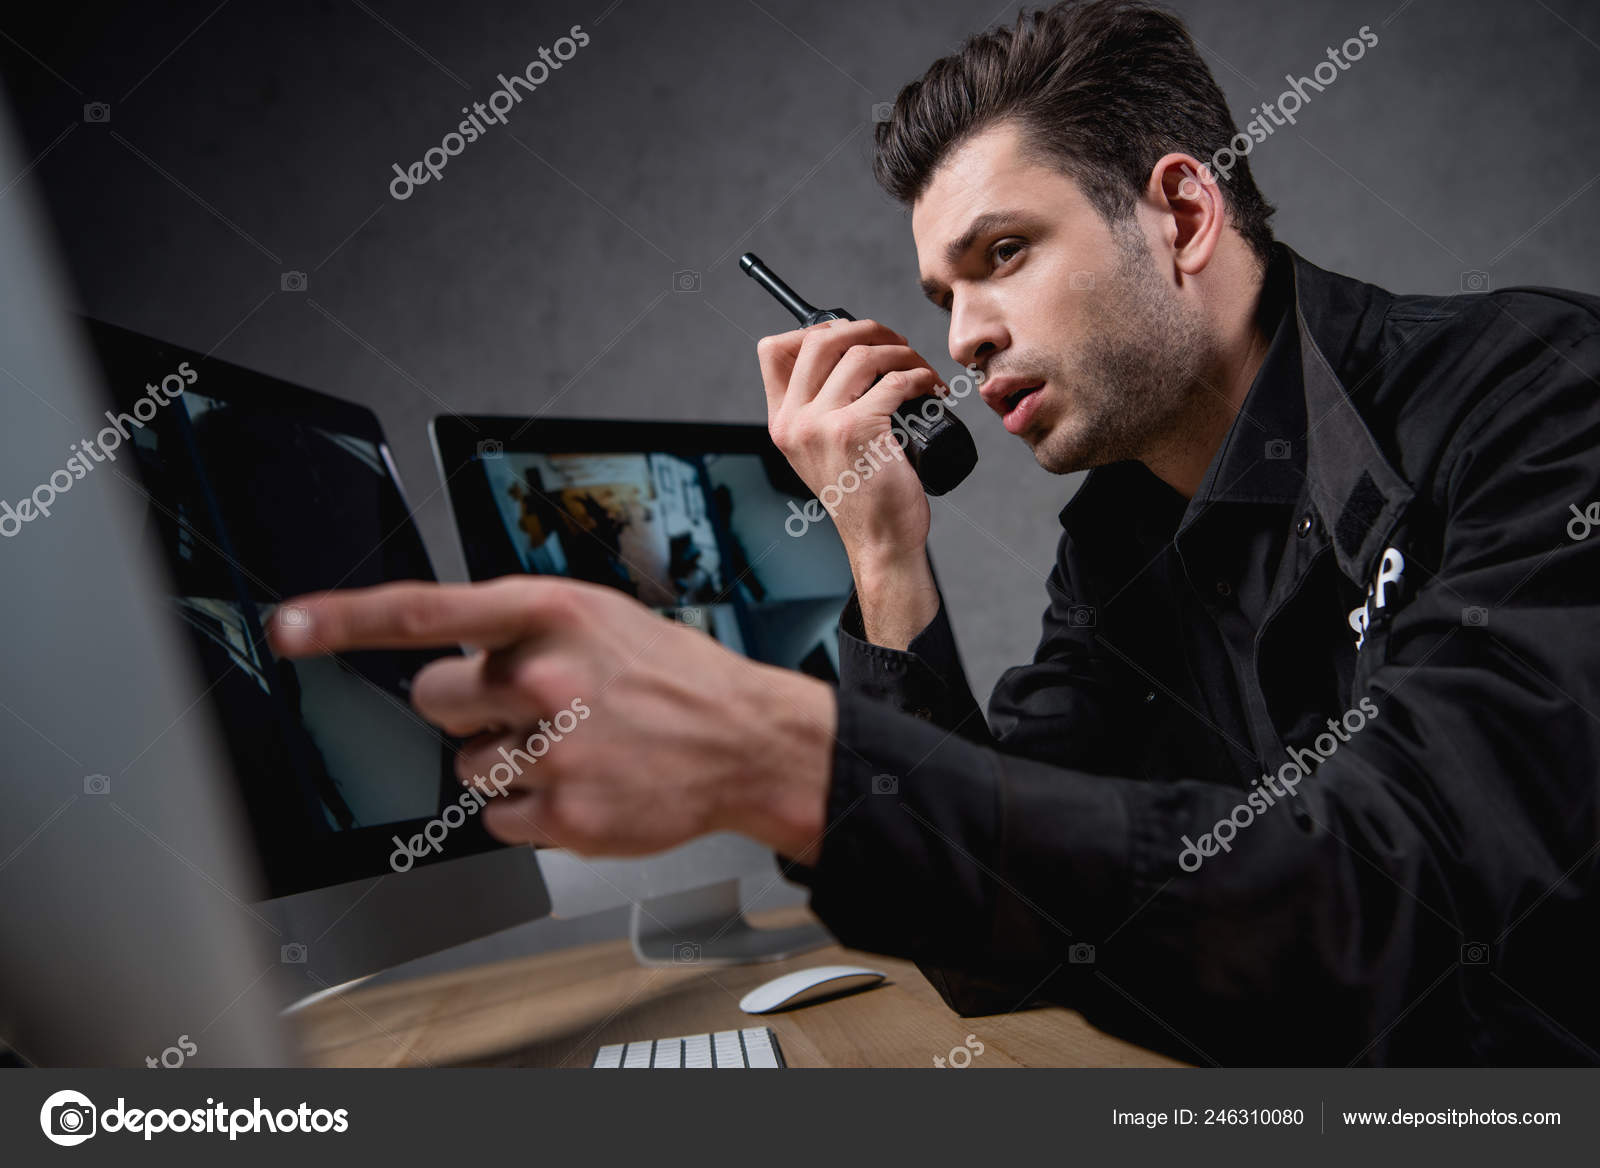 f36bb9d6 Guard Uniform Talking Walkie Talkie Looking Computer Monitor — Stock Photo